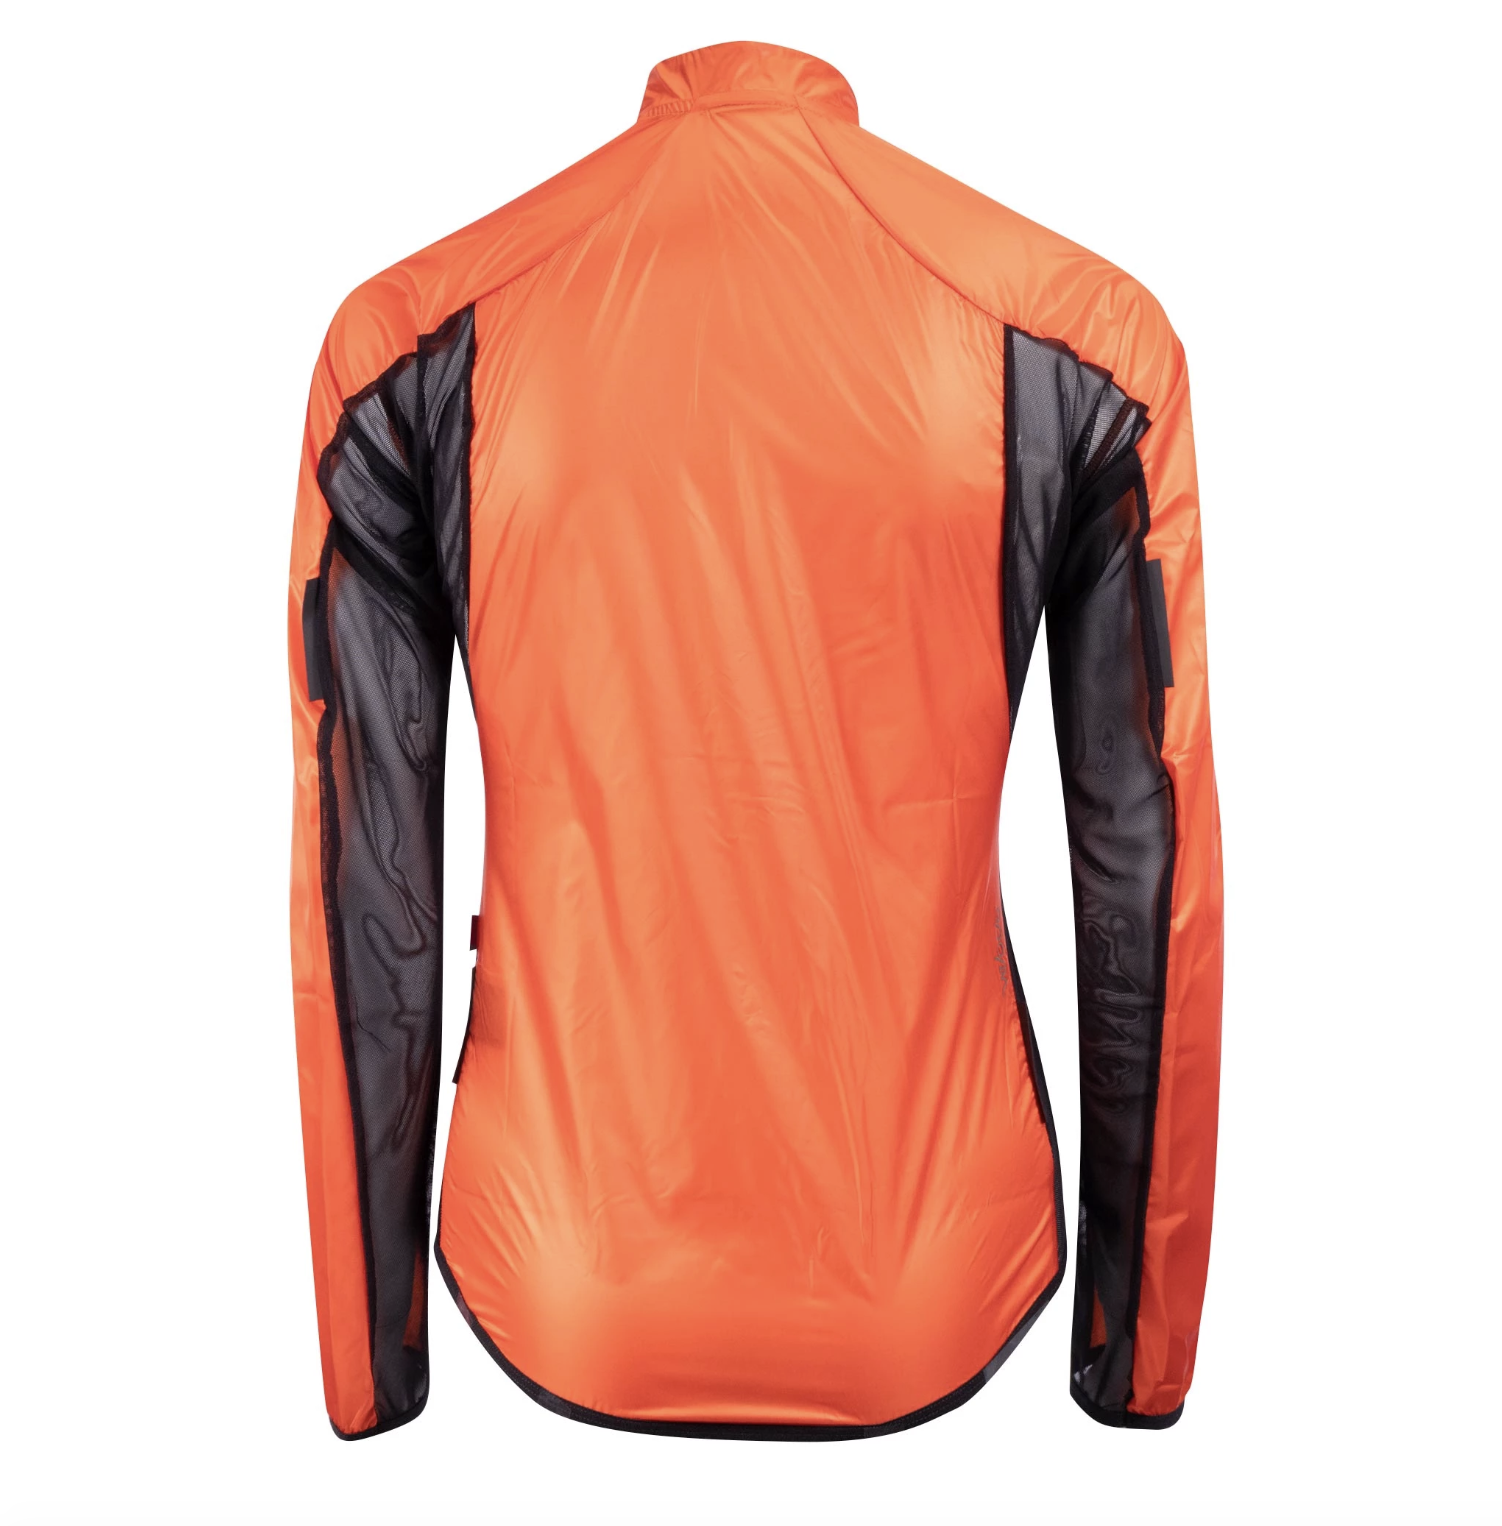 VELOCIO WOMENS WIND JACKET ORANGE